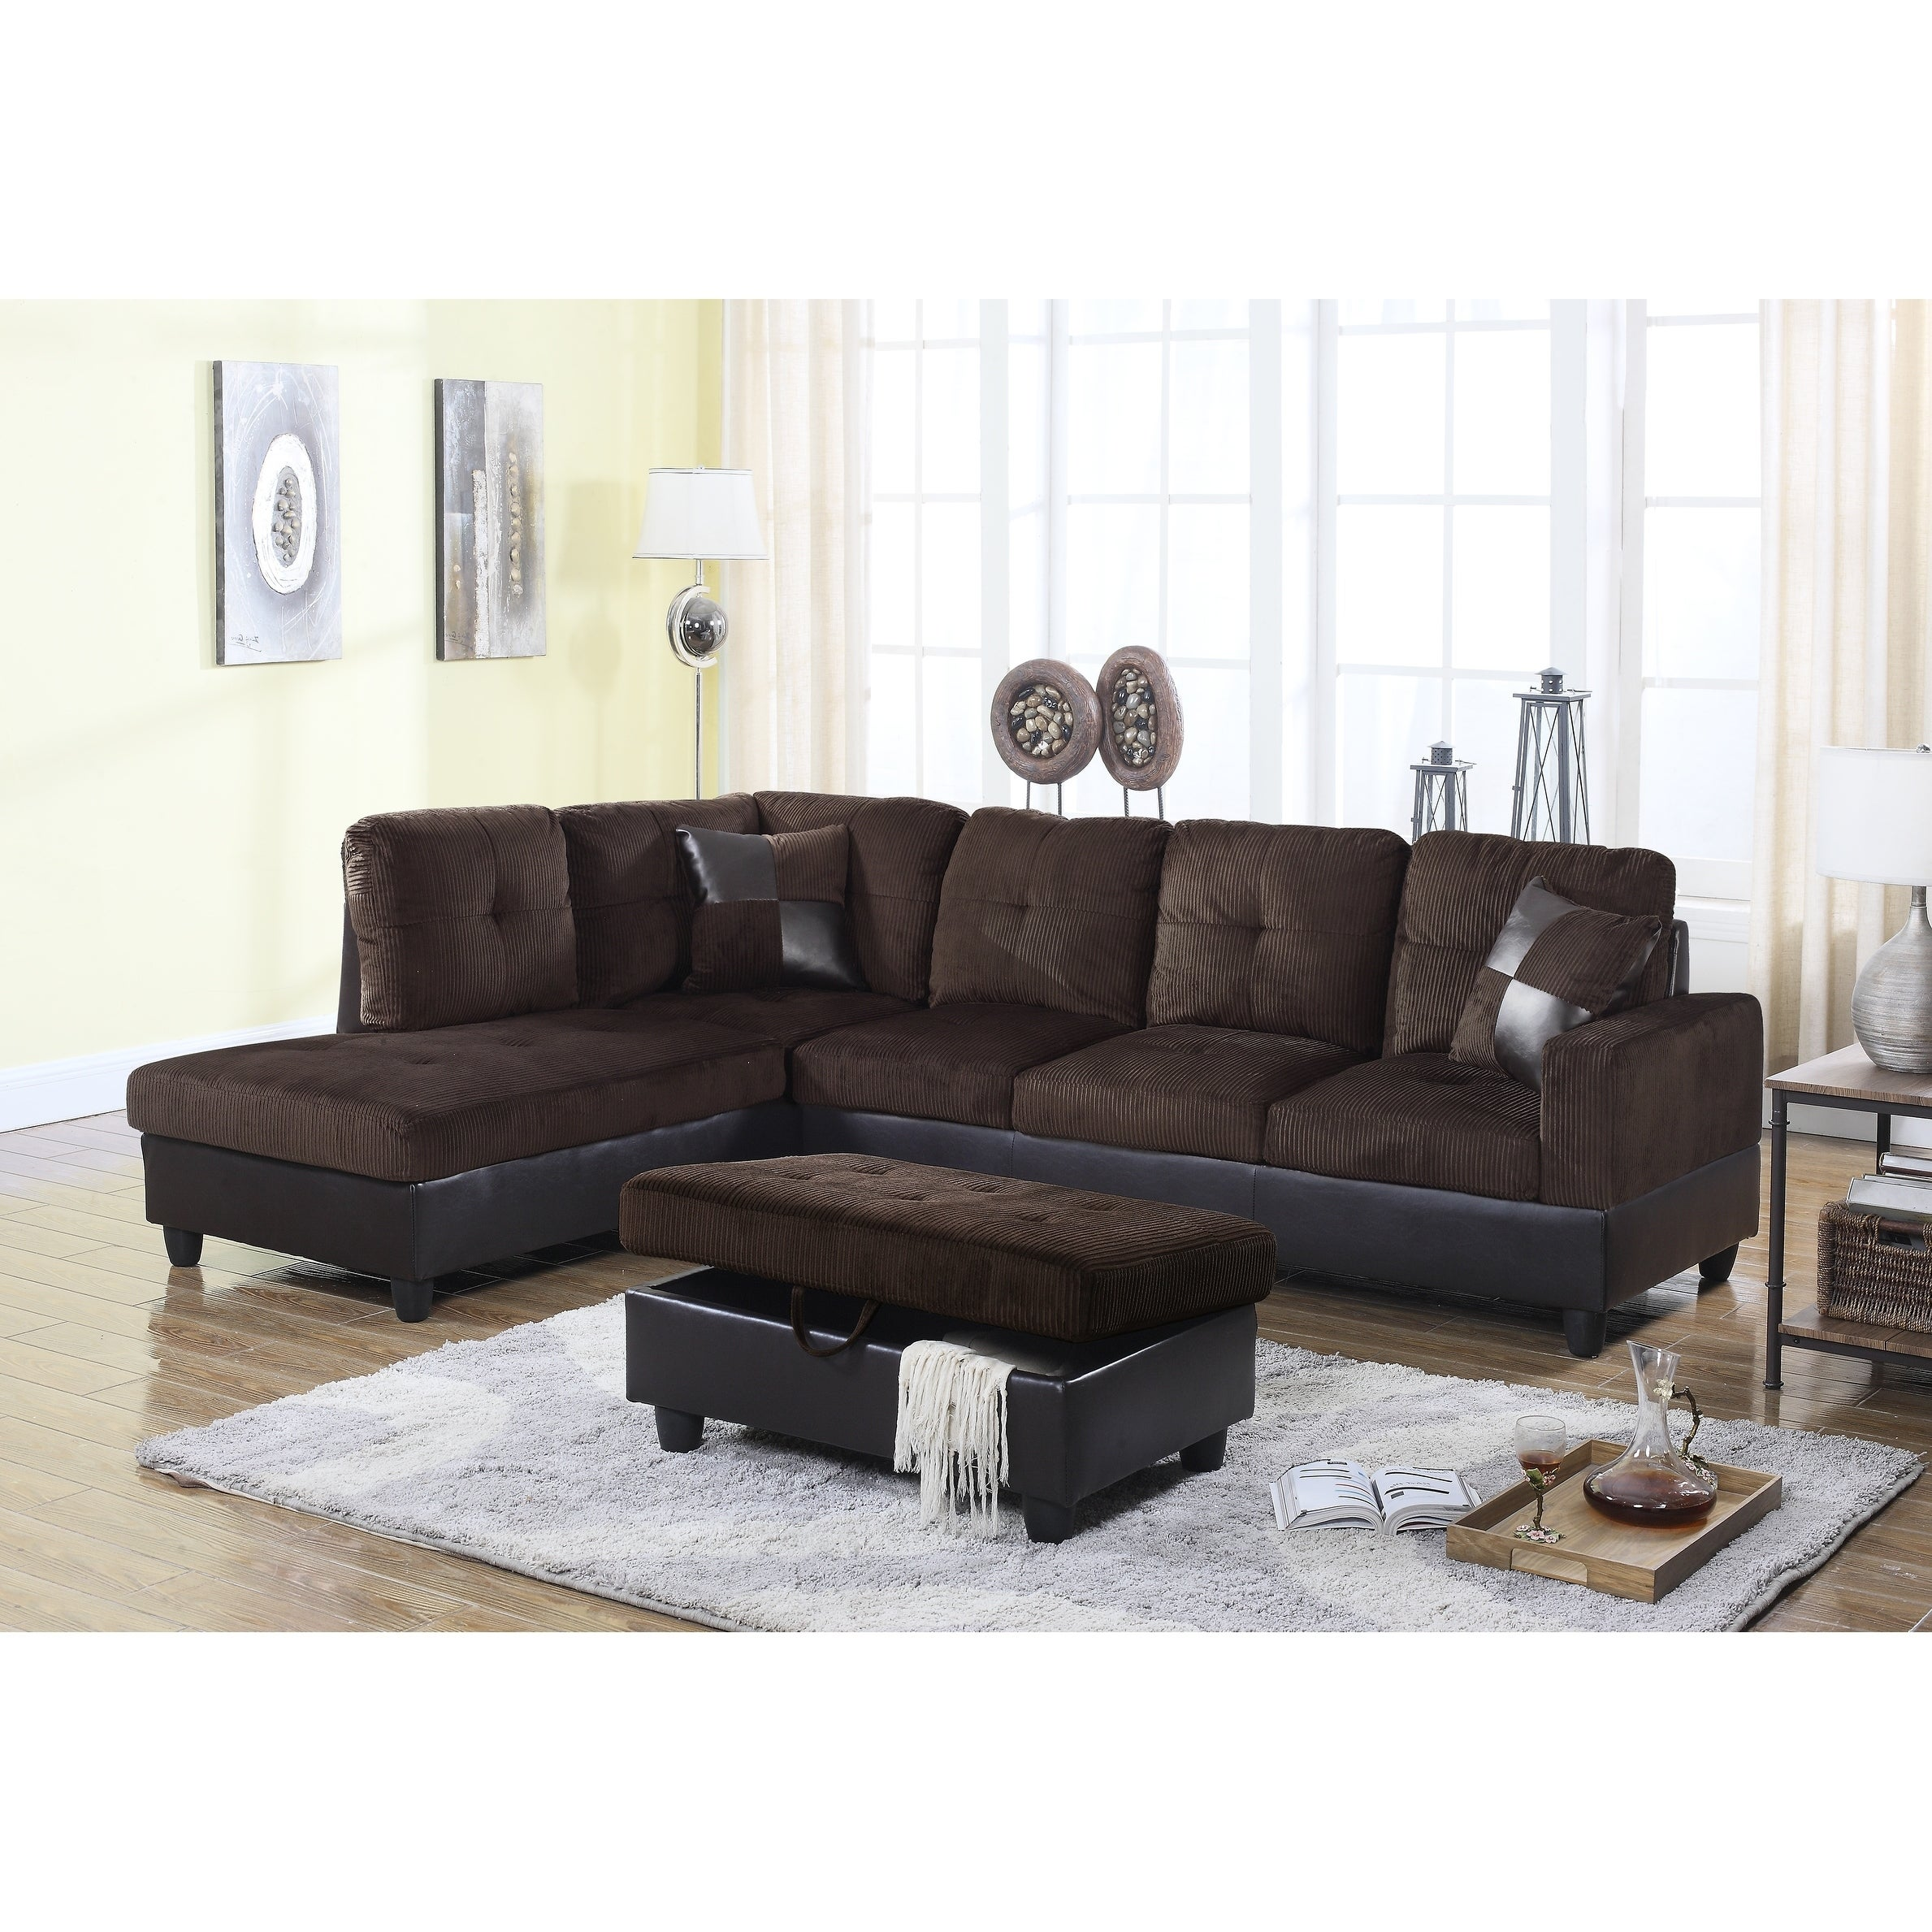 Golden Coast Furniture 3 Piece Microfiber Leather Sofa Sectional With Ottoman Storage Free Shipping Today 21930338